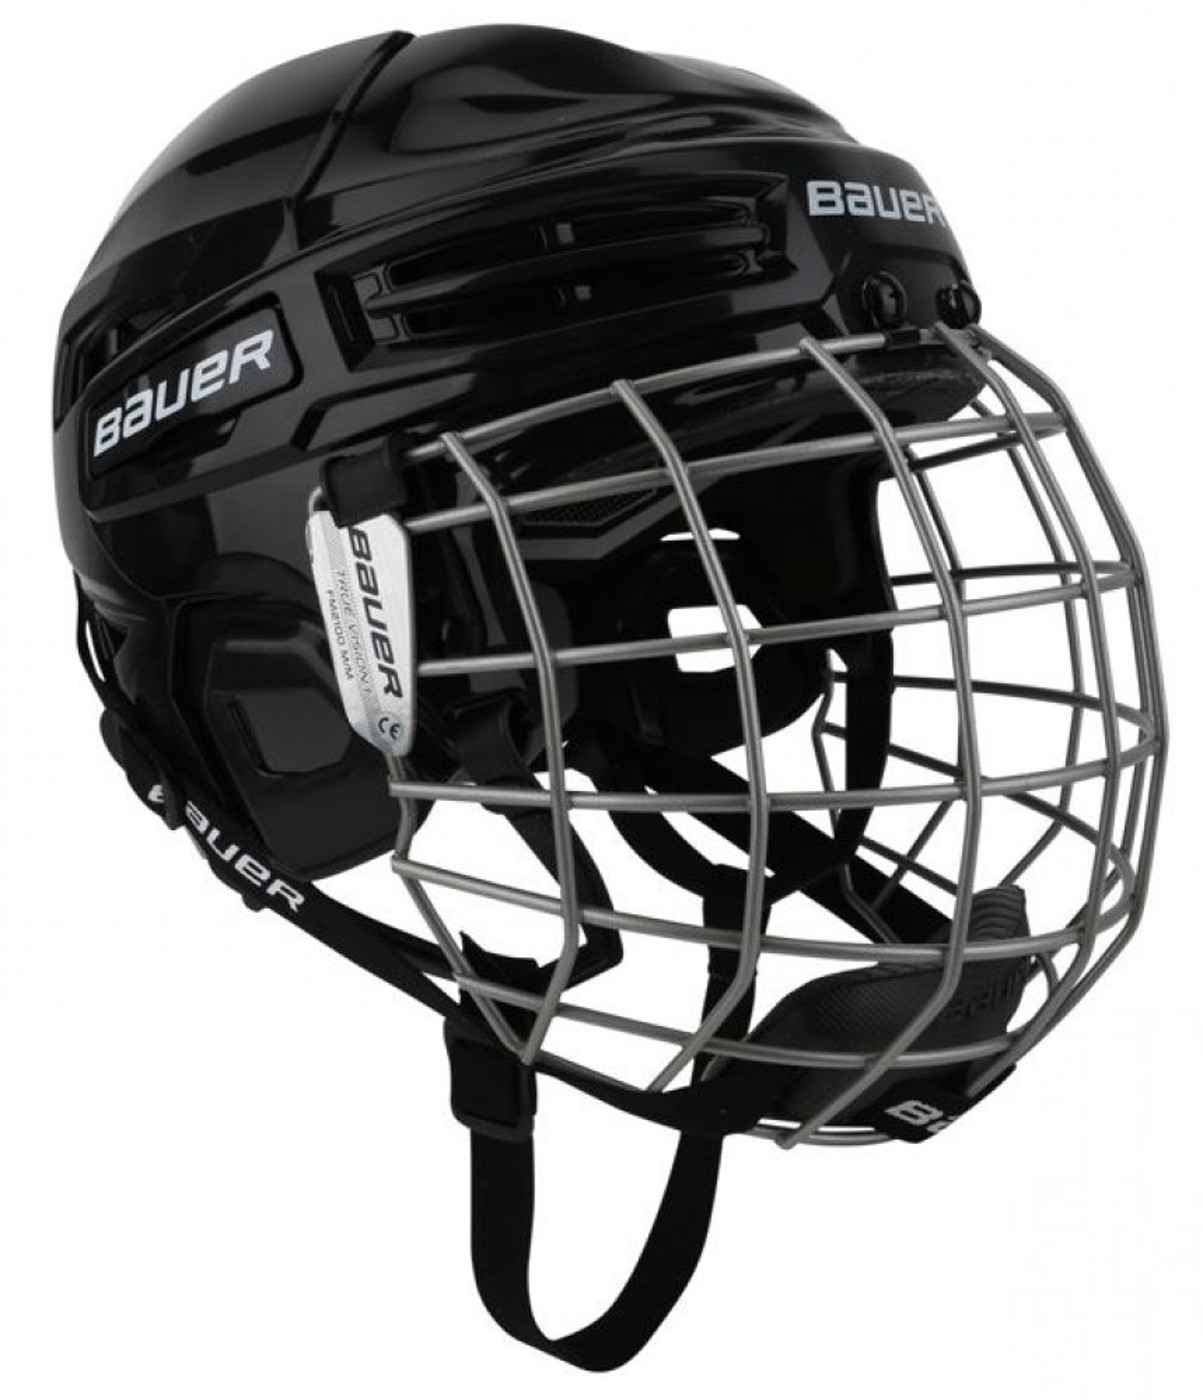 BAUER IMS 5.0 COMBO